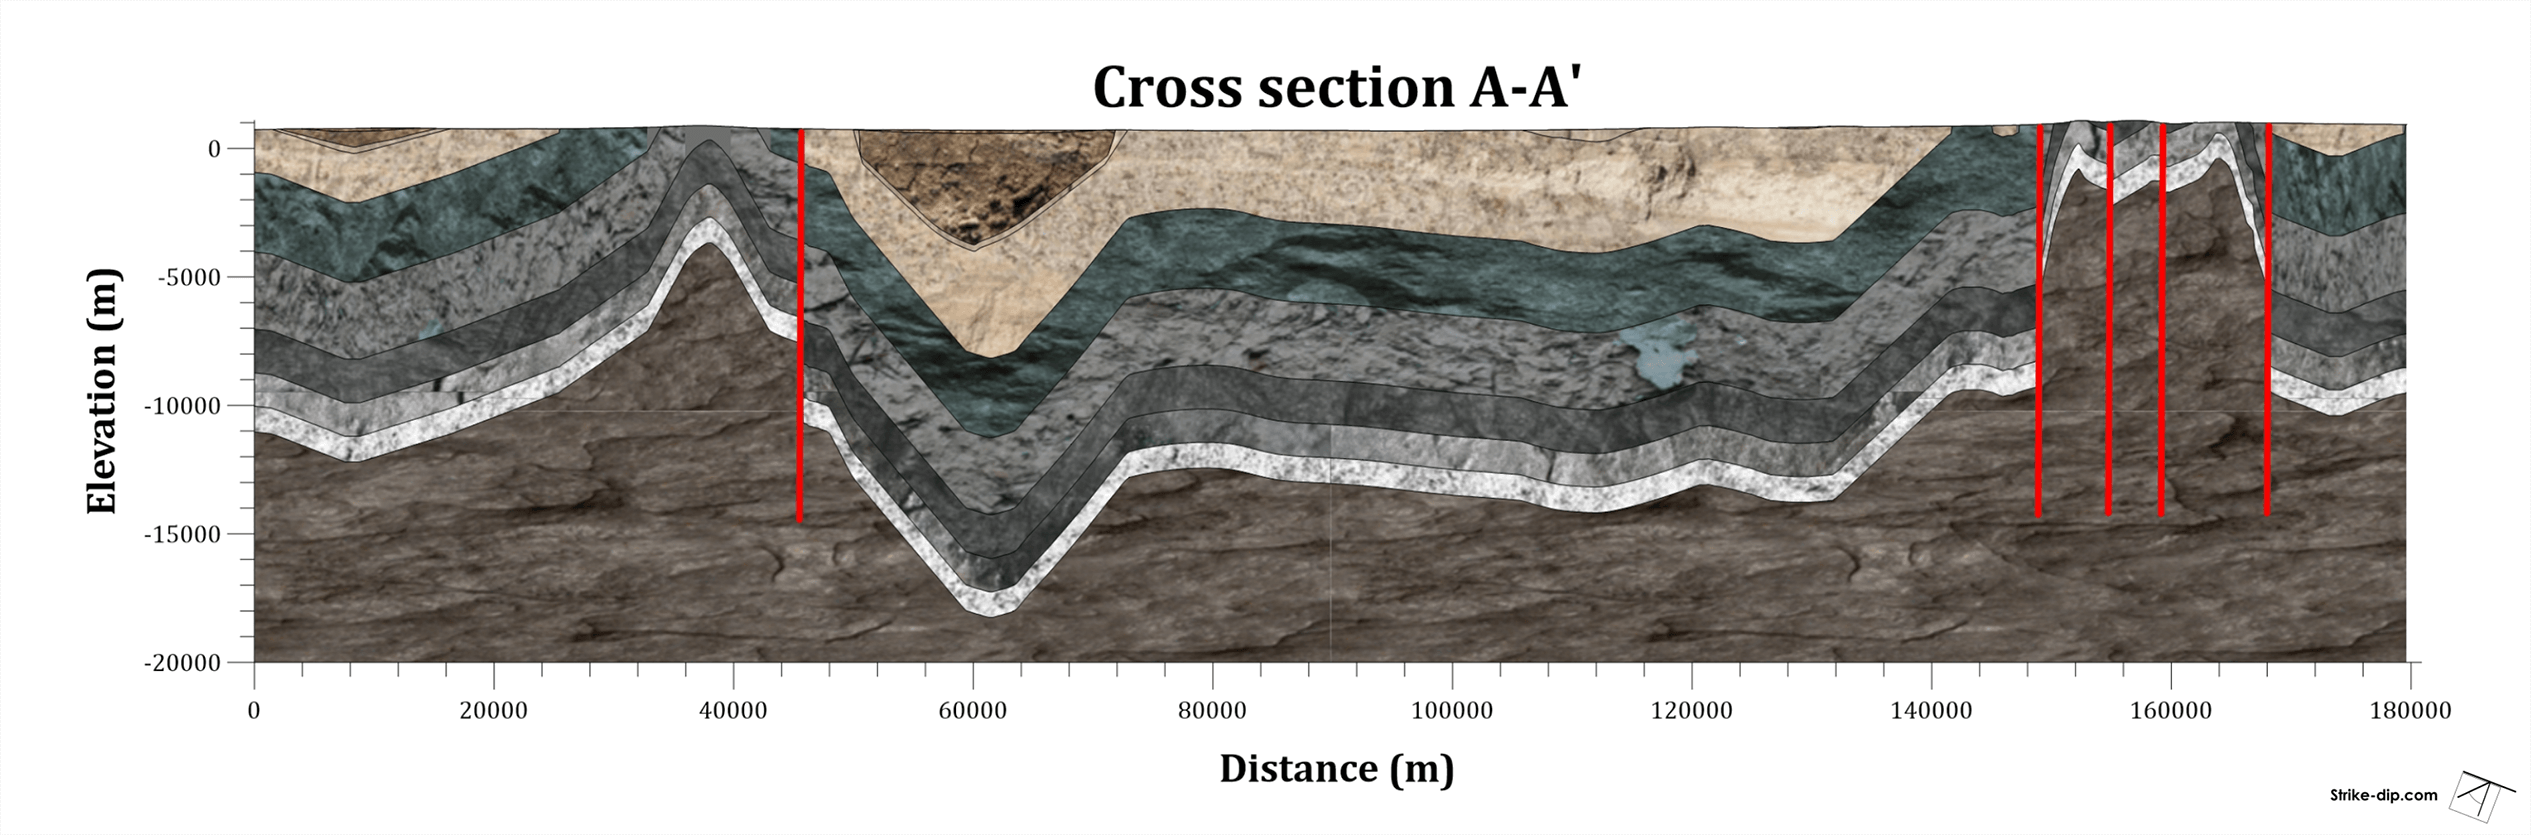 Illustrative Cross Section